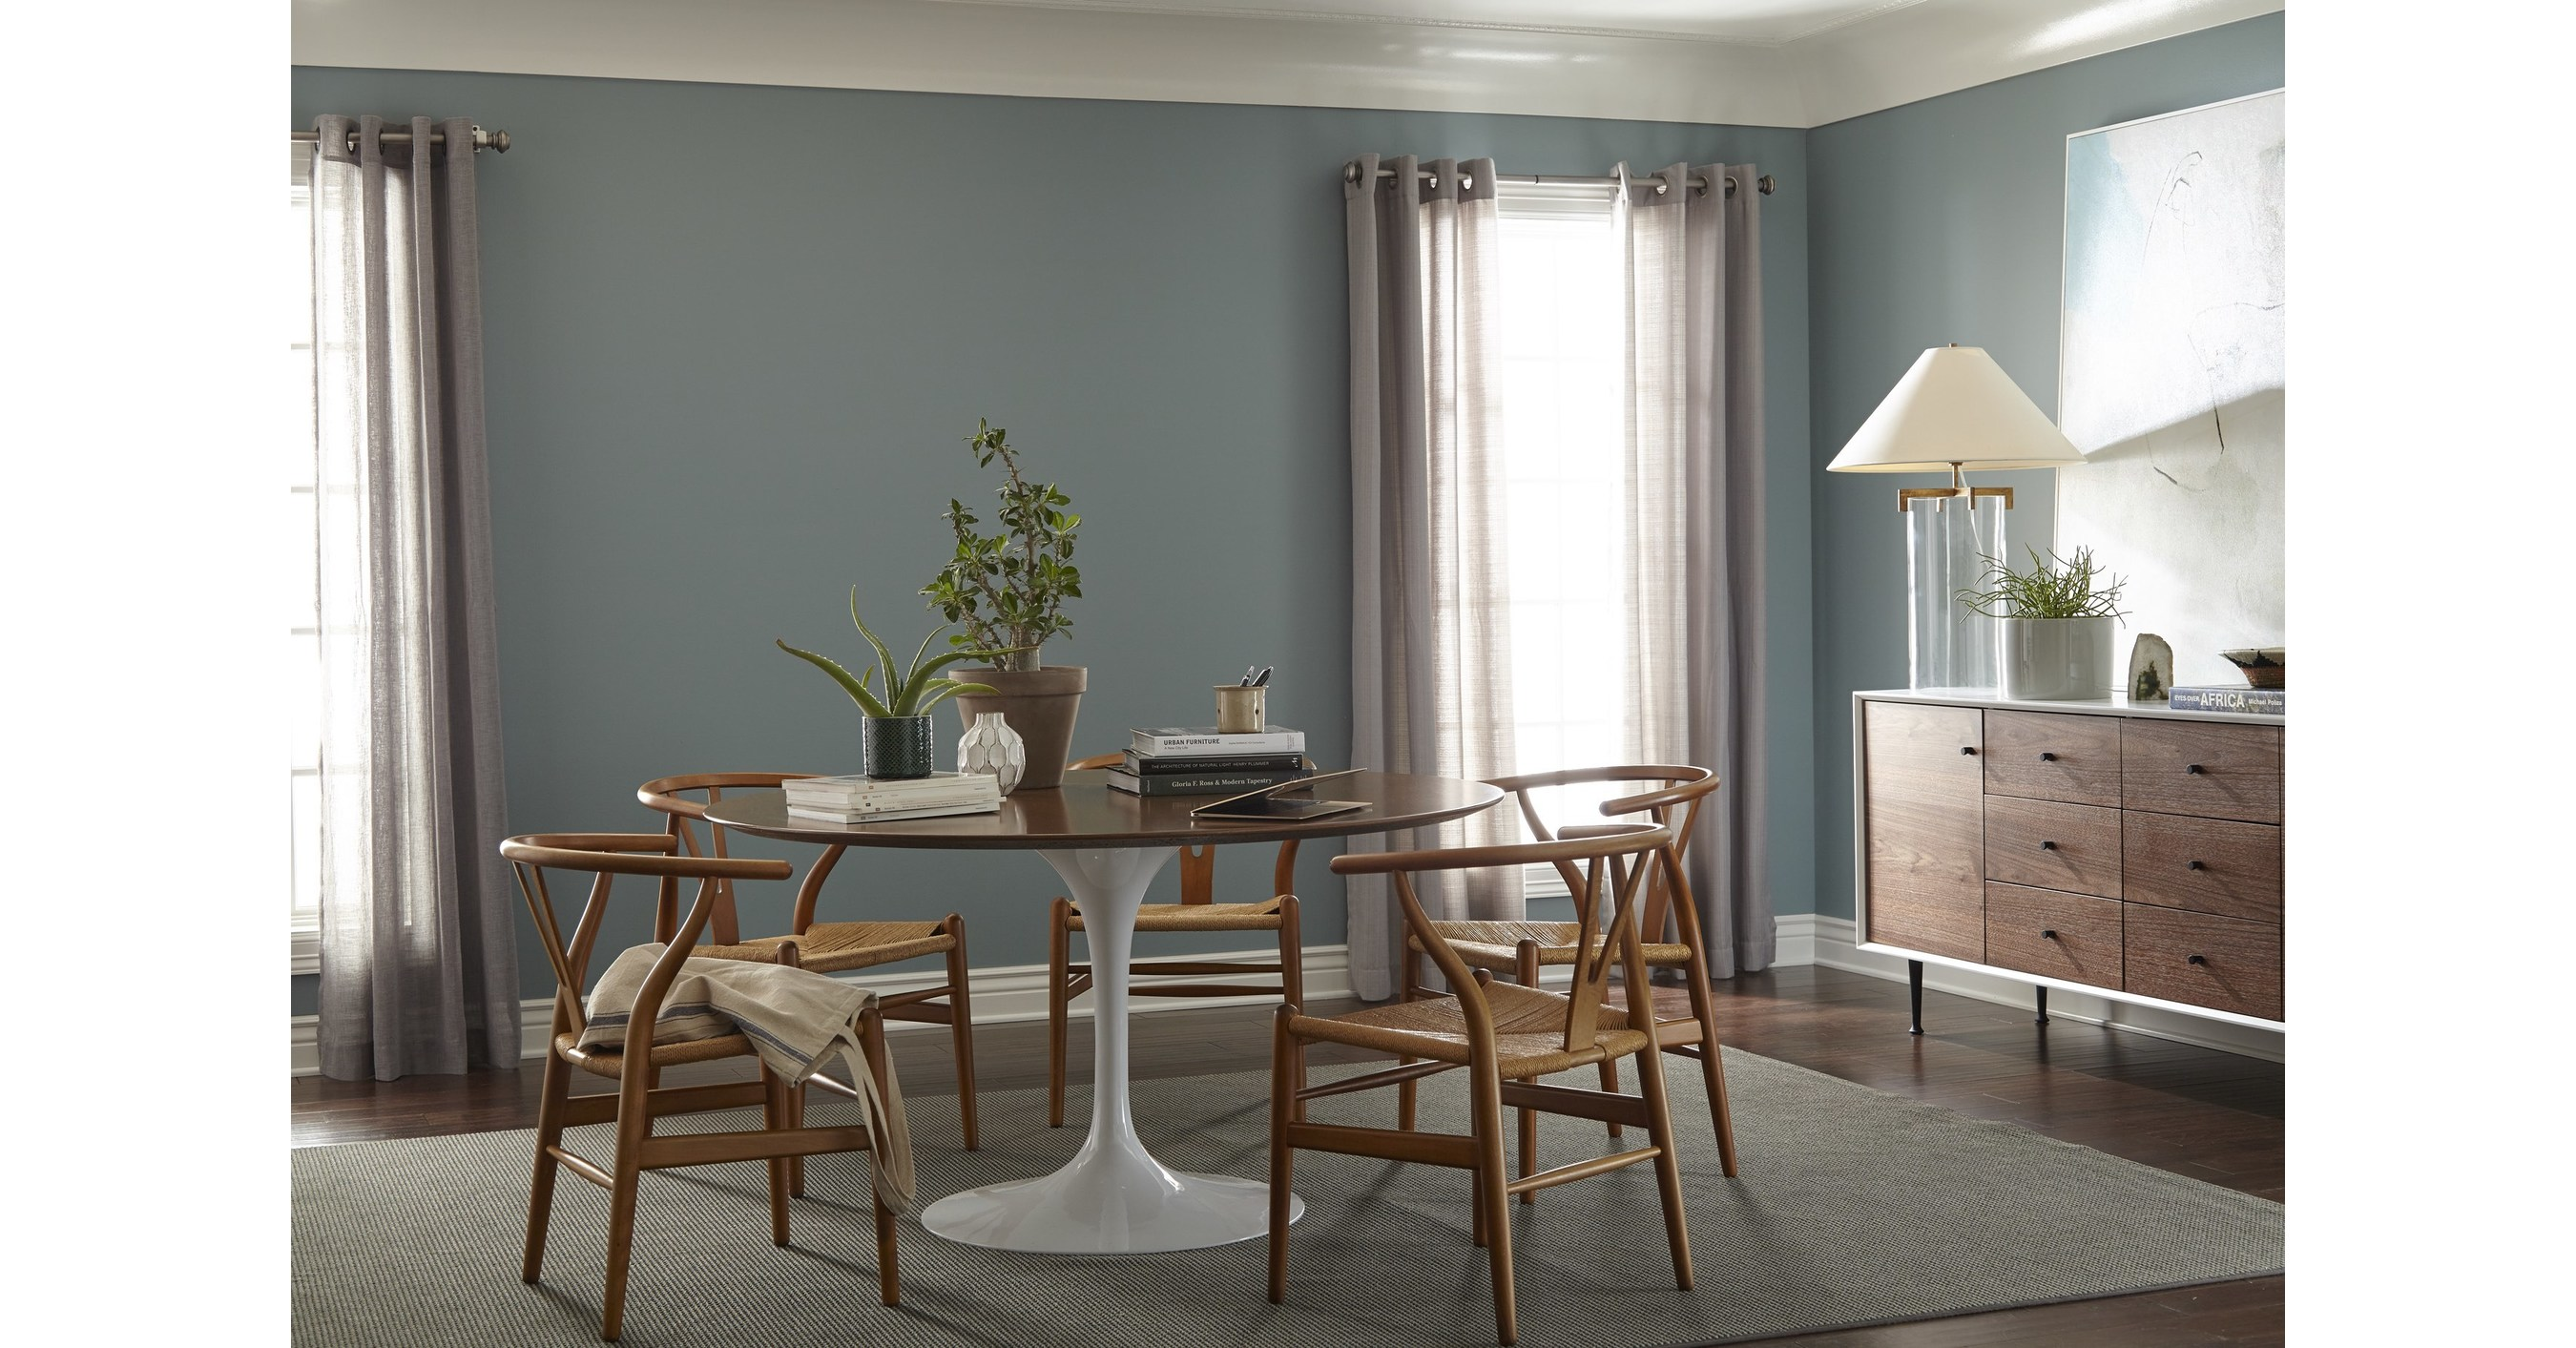 Behr paint reveals 2018 color of the year in the moment for Dining room designs 2018